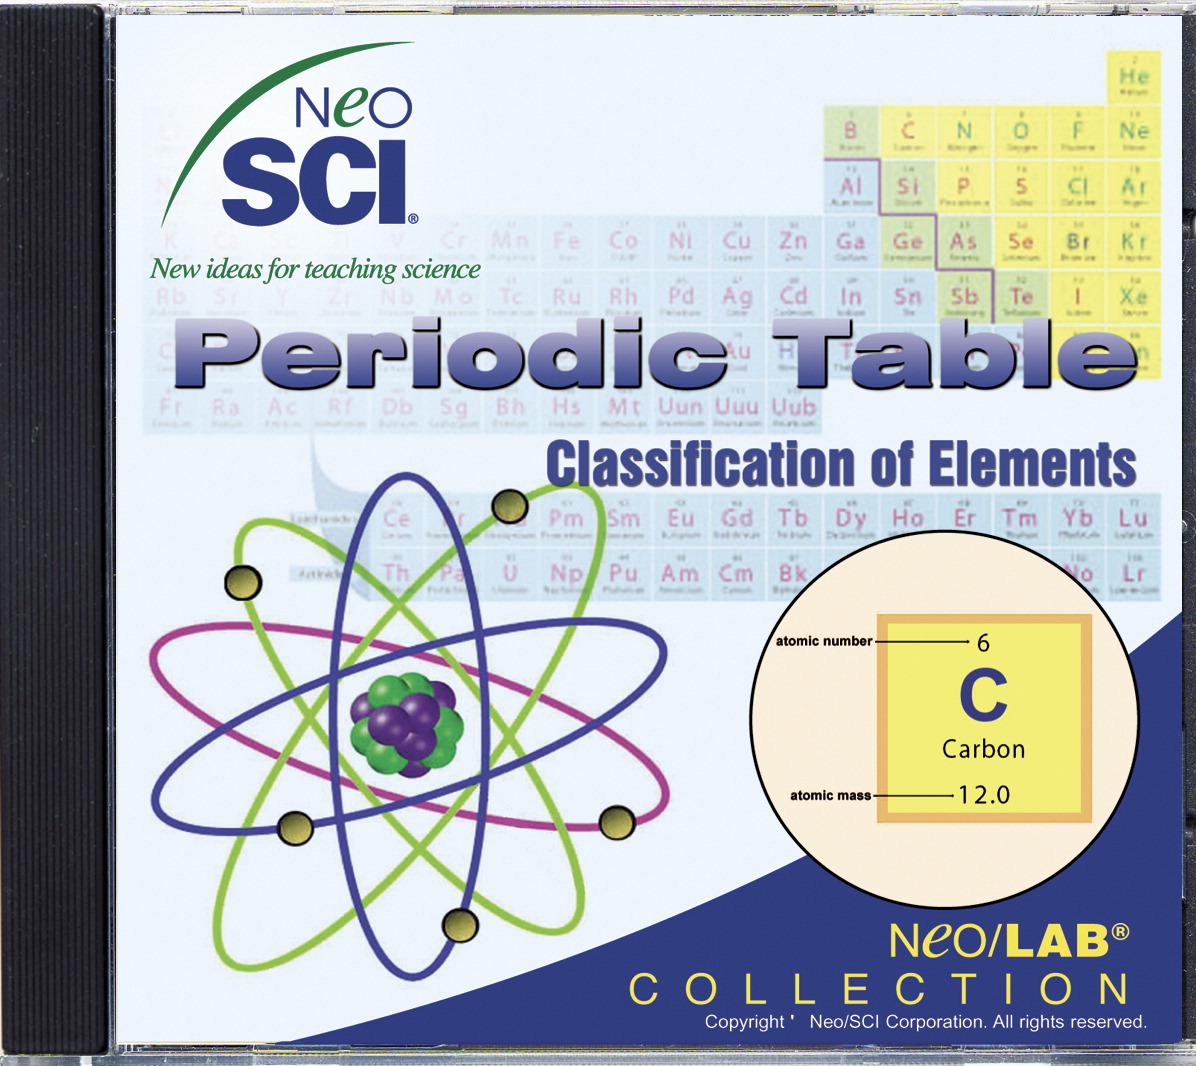 Cd rom frey scientific cpo science neosci the periodic table classification of elements middle school neolab software urtaz Image collections